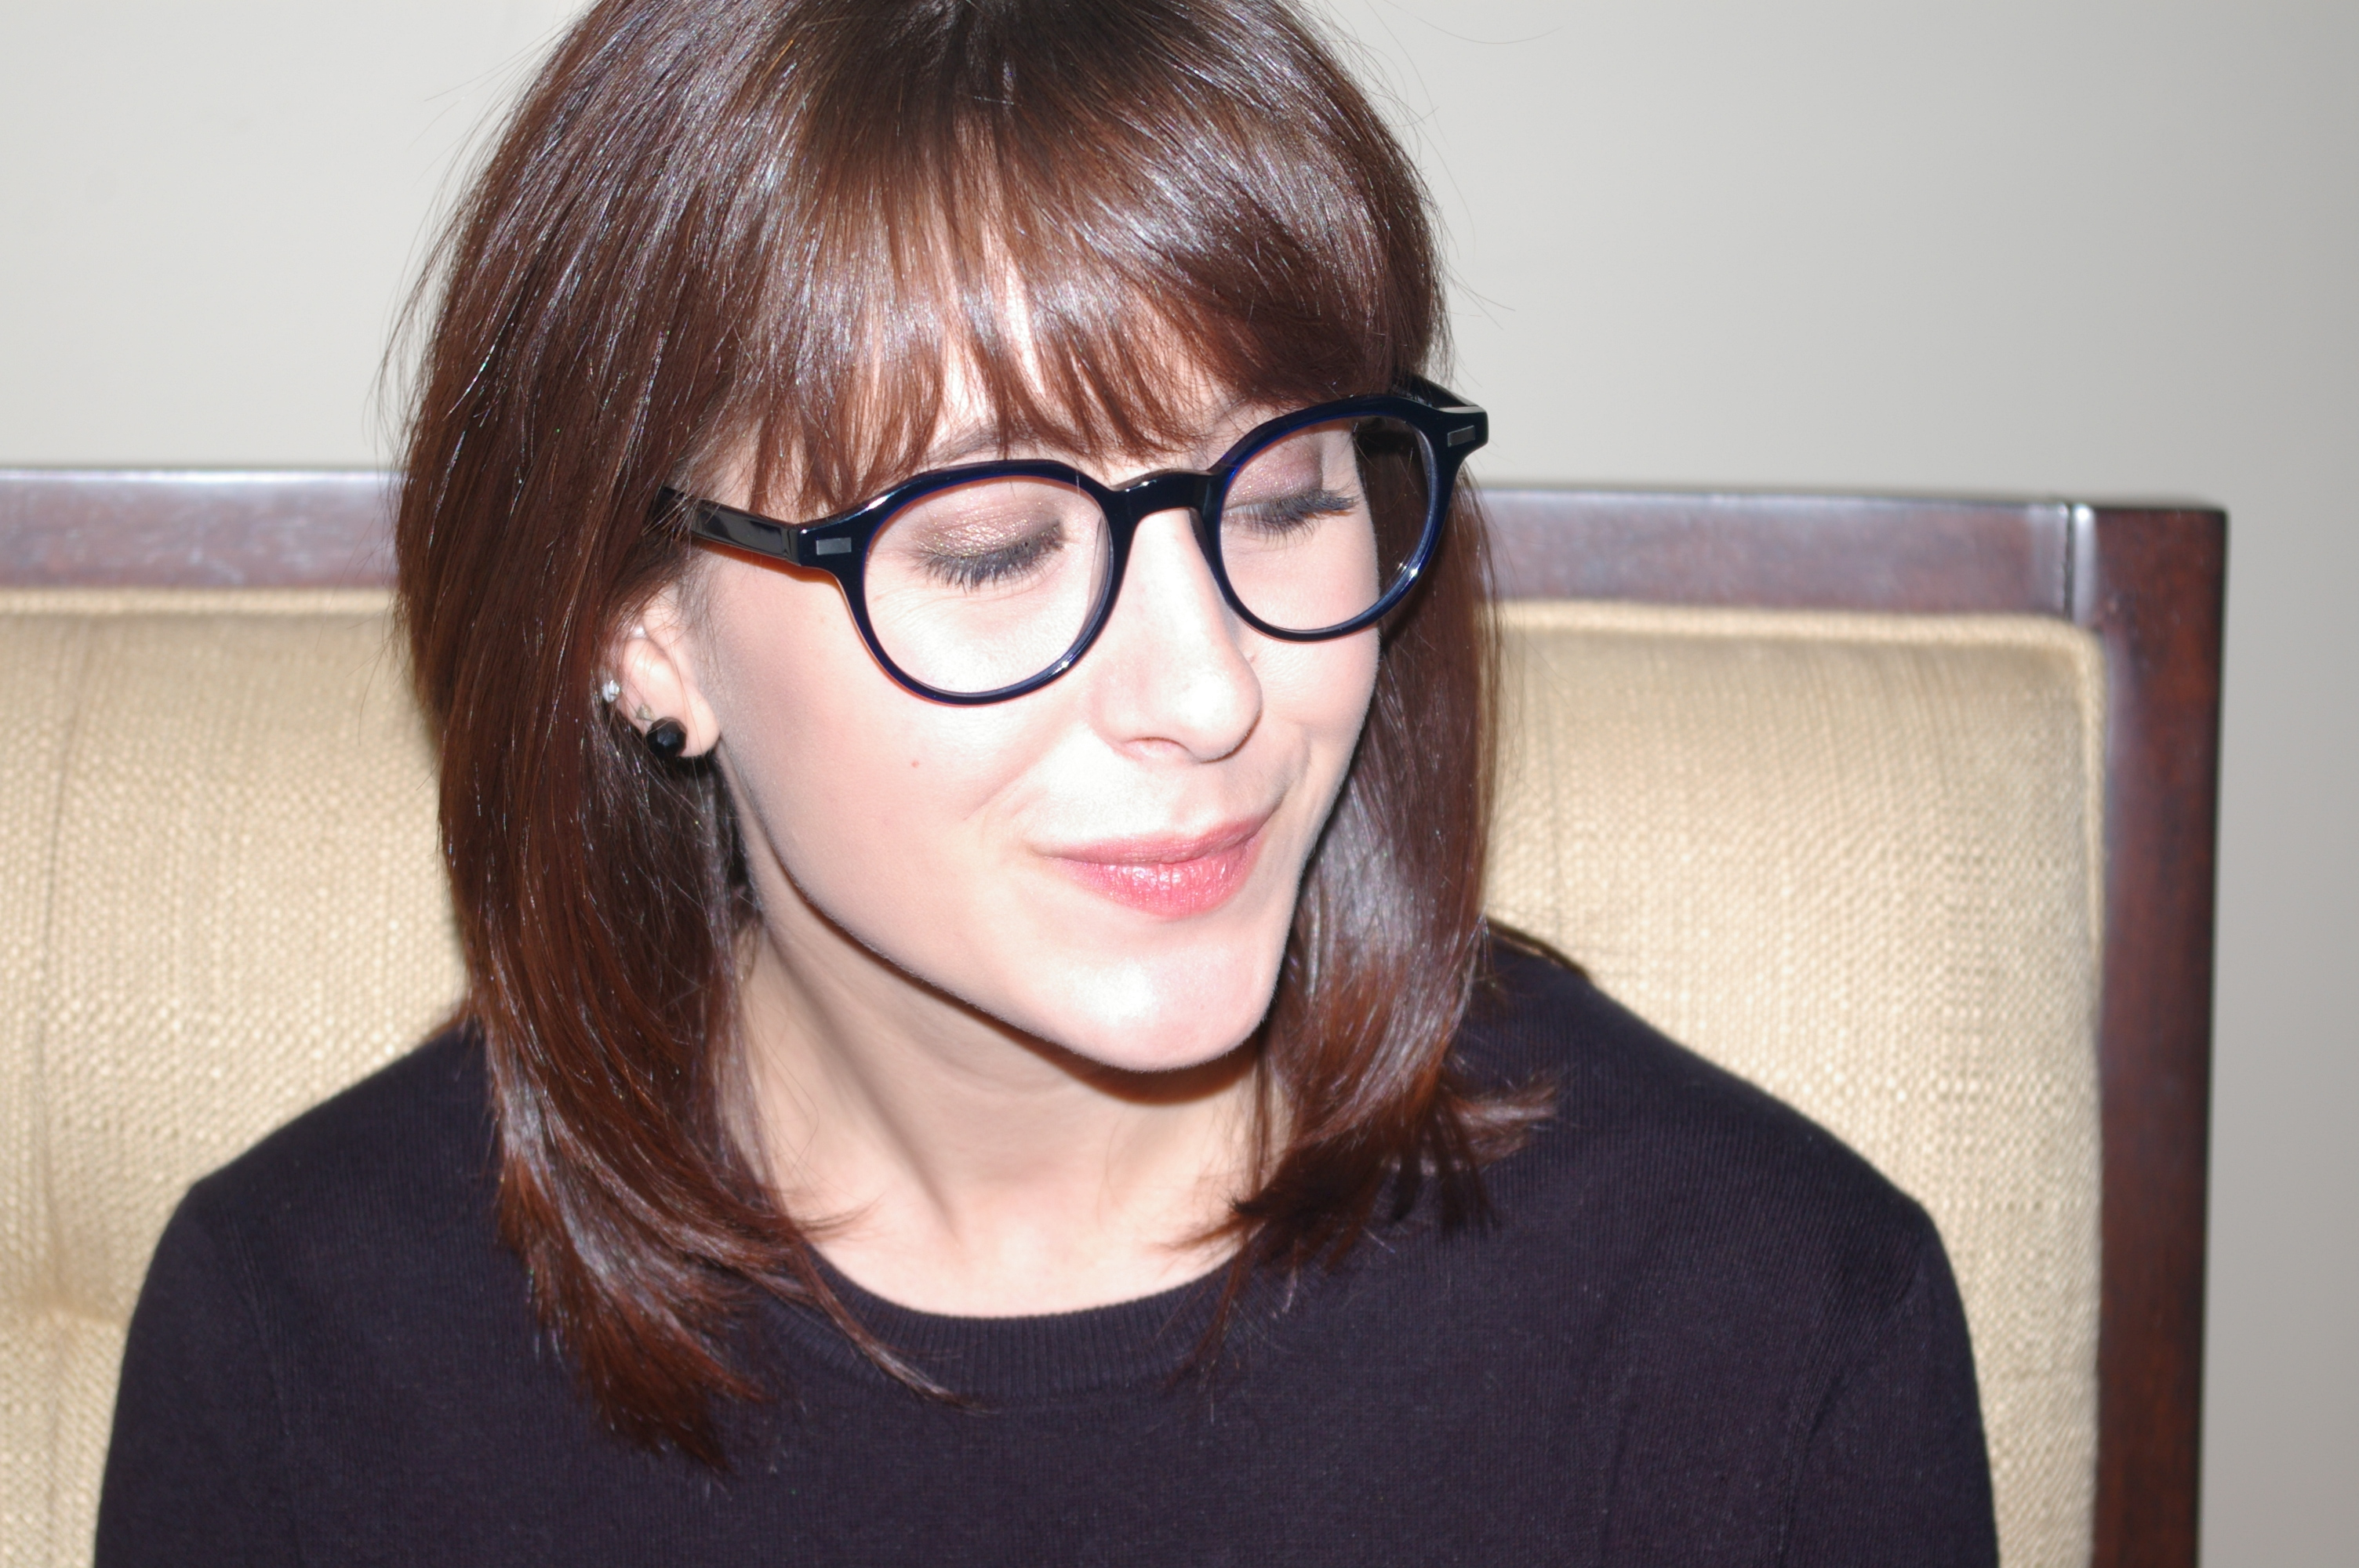 ecc158c745 Warby Parker at home try-on – Hillary Christine